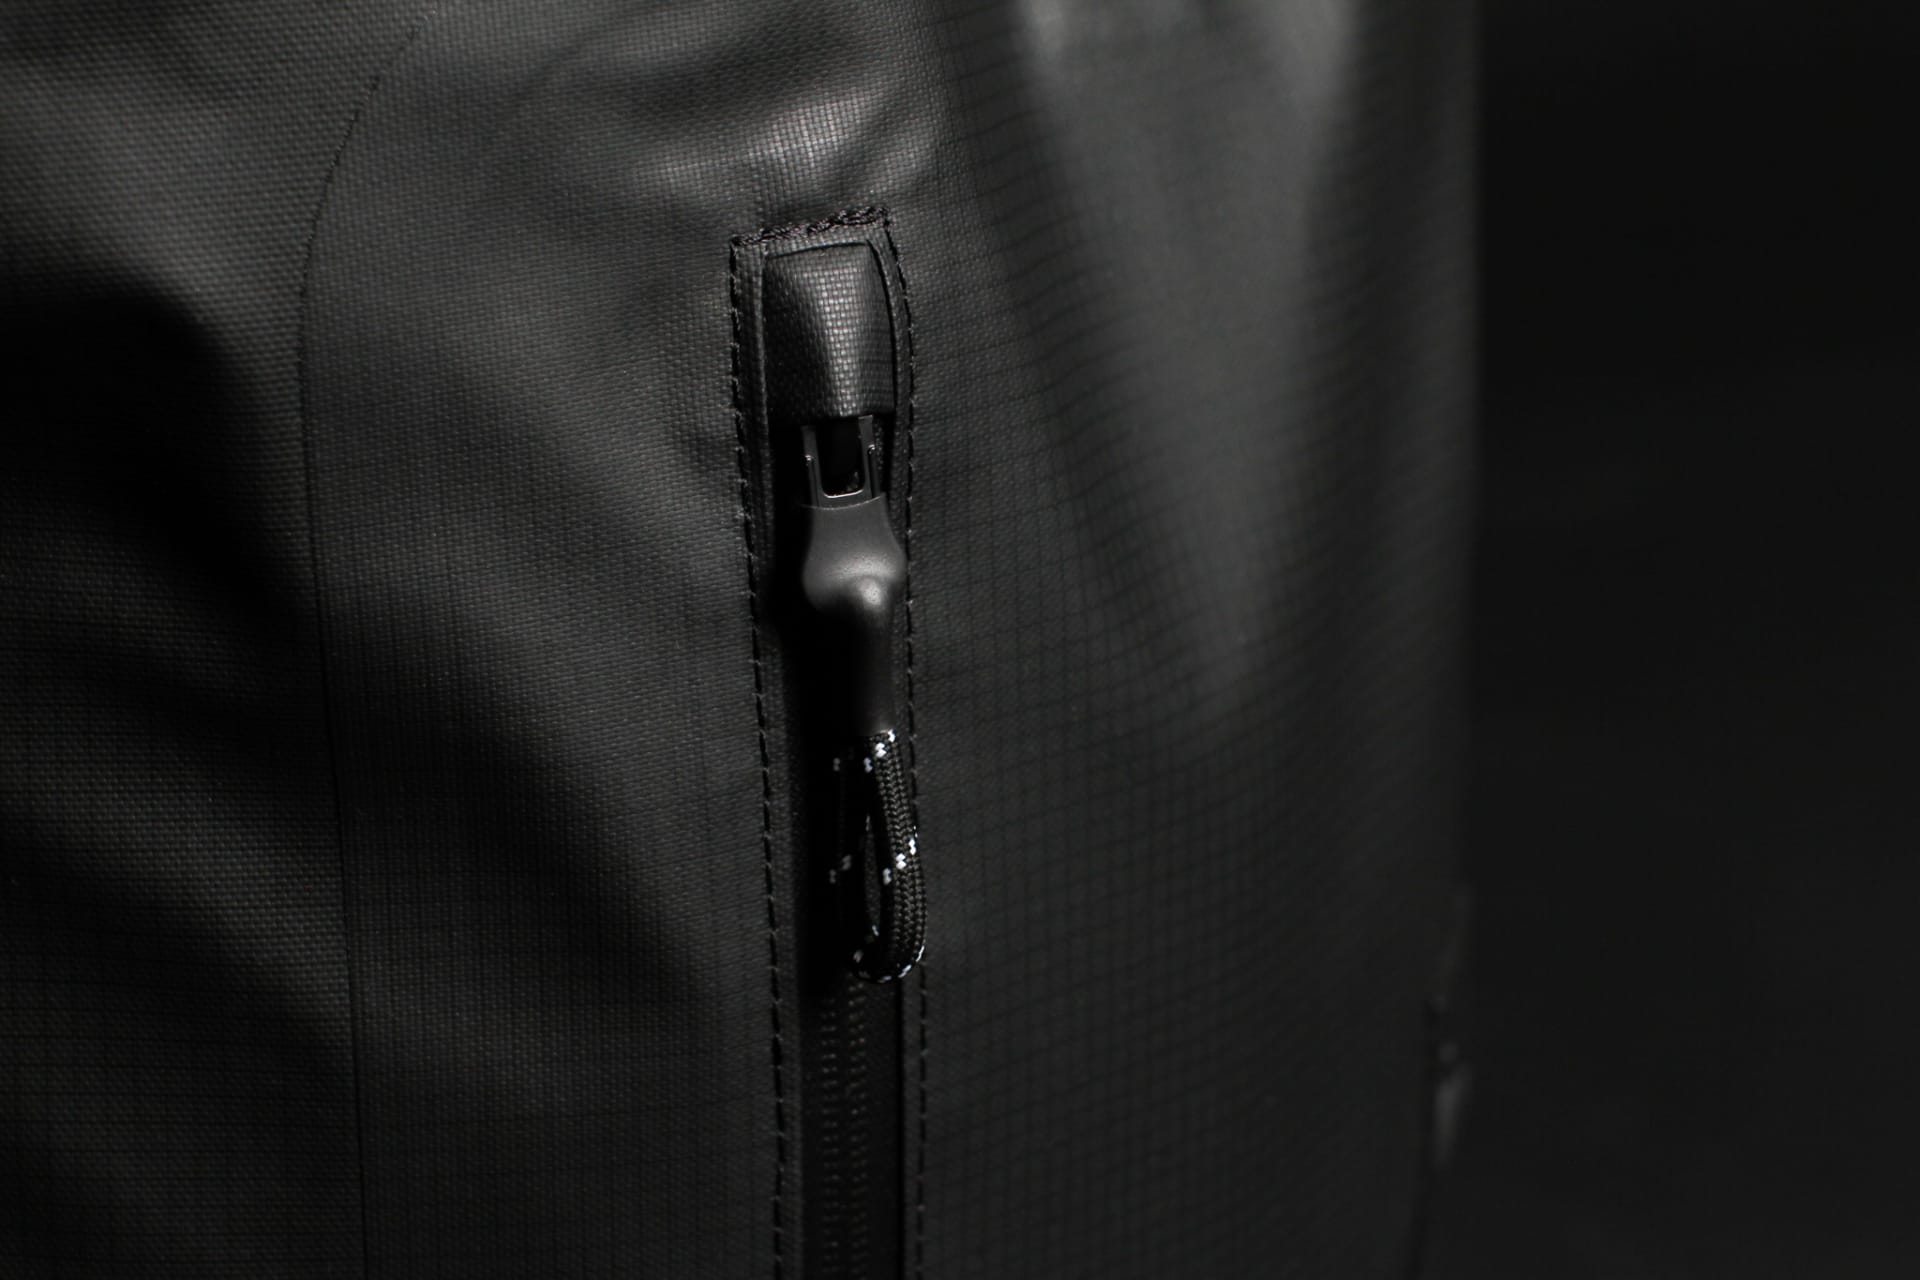 YKK Coated Zippers